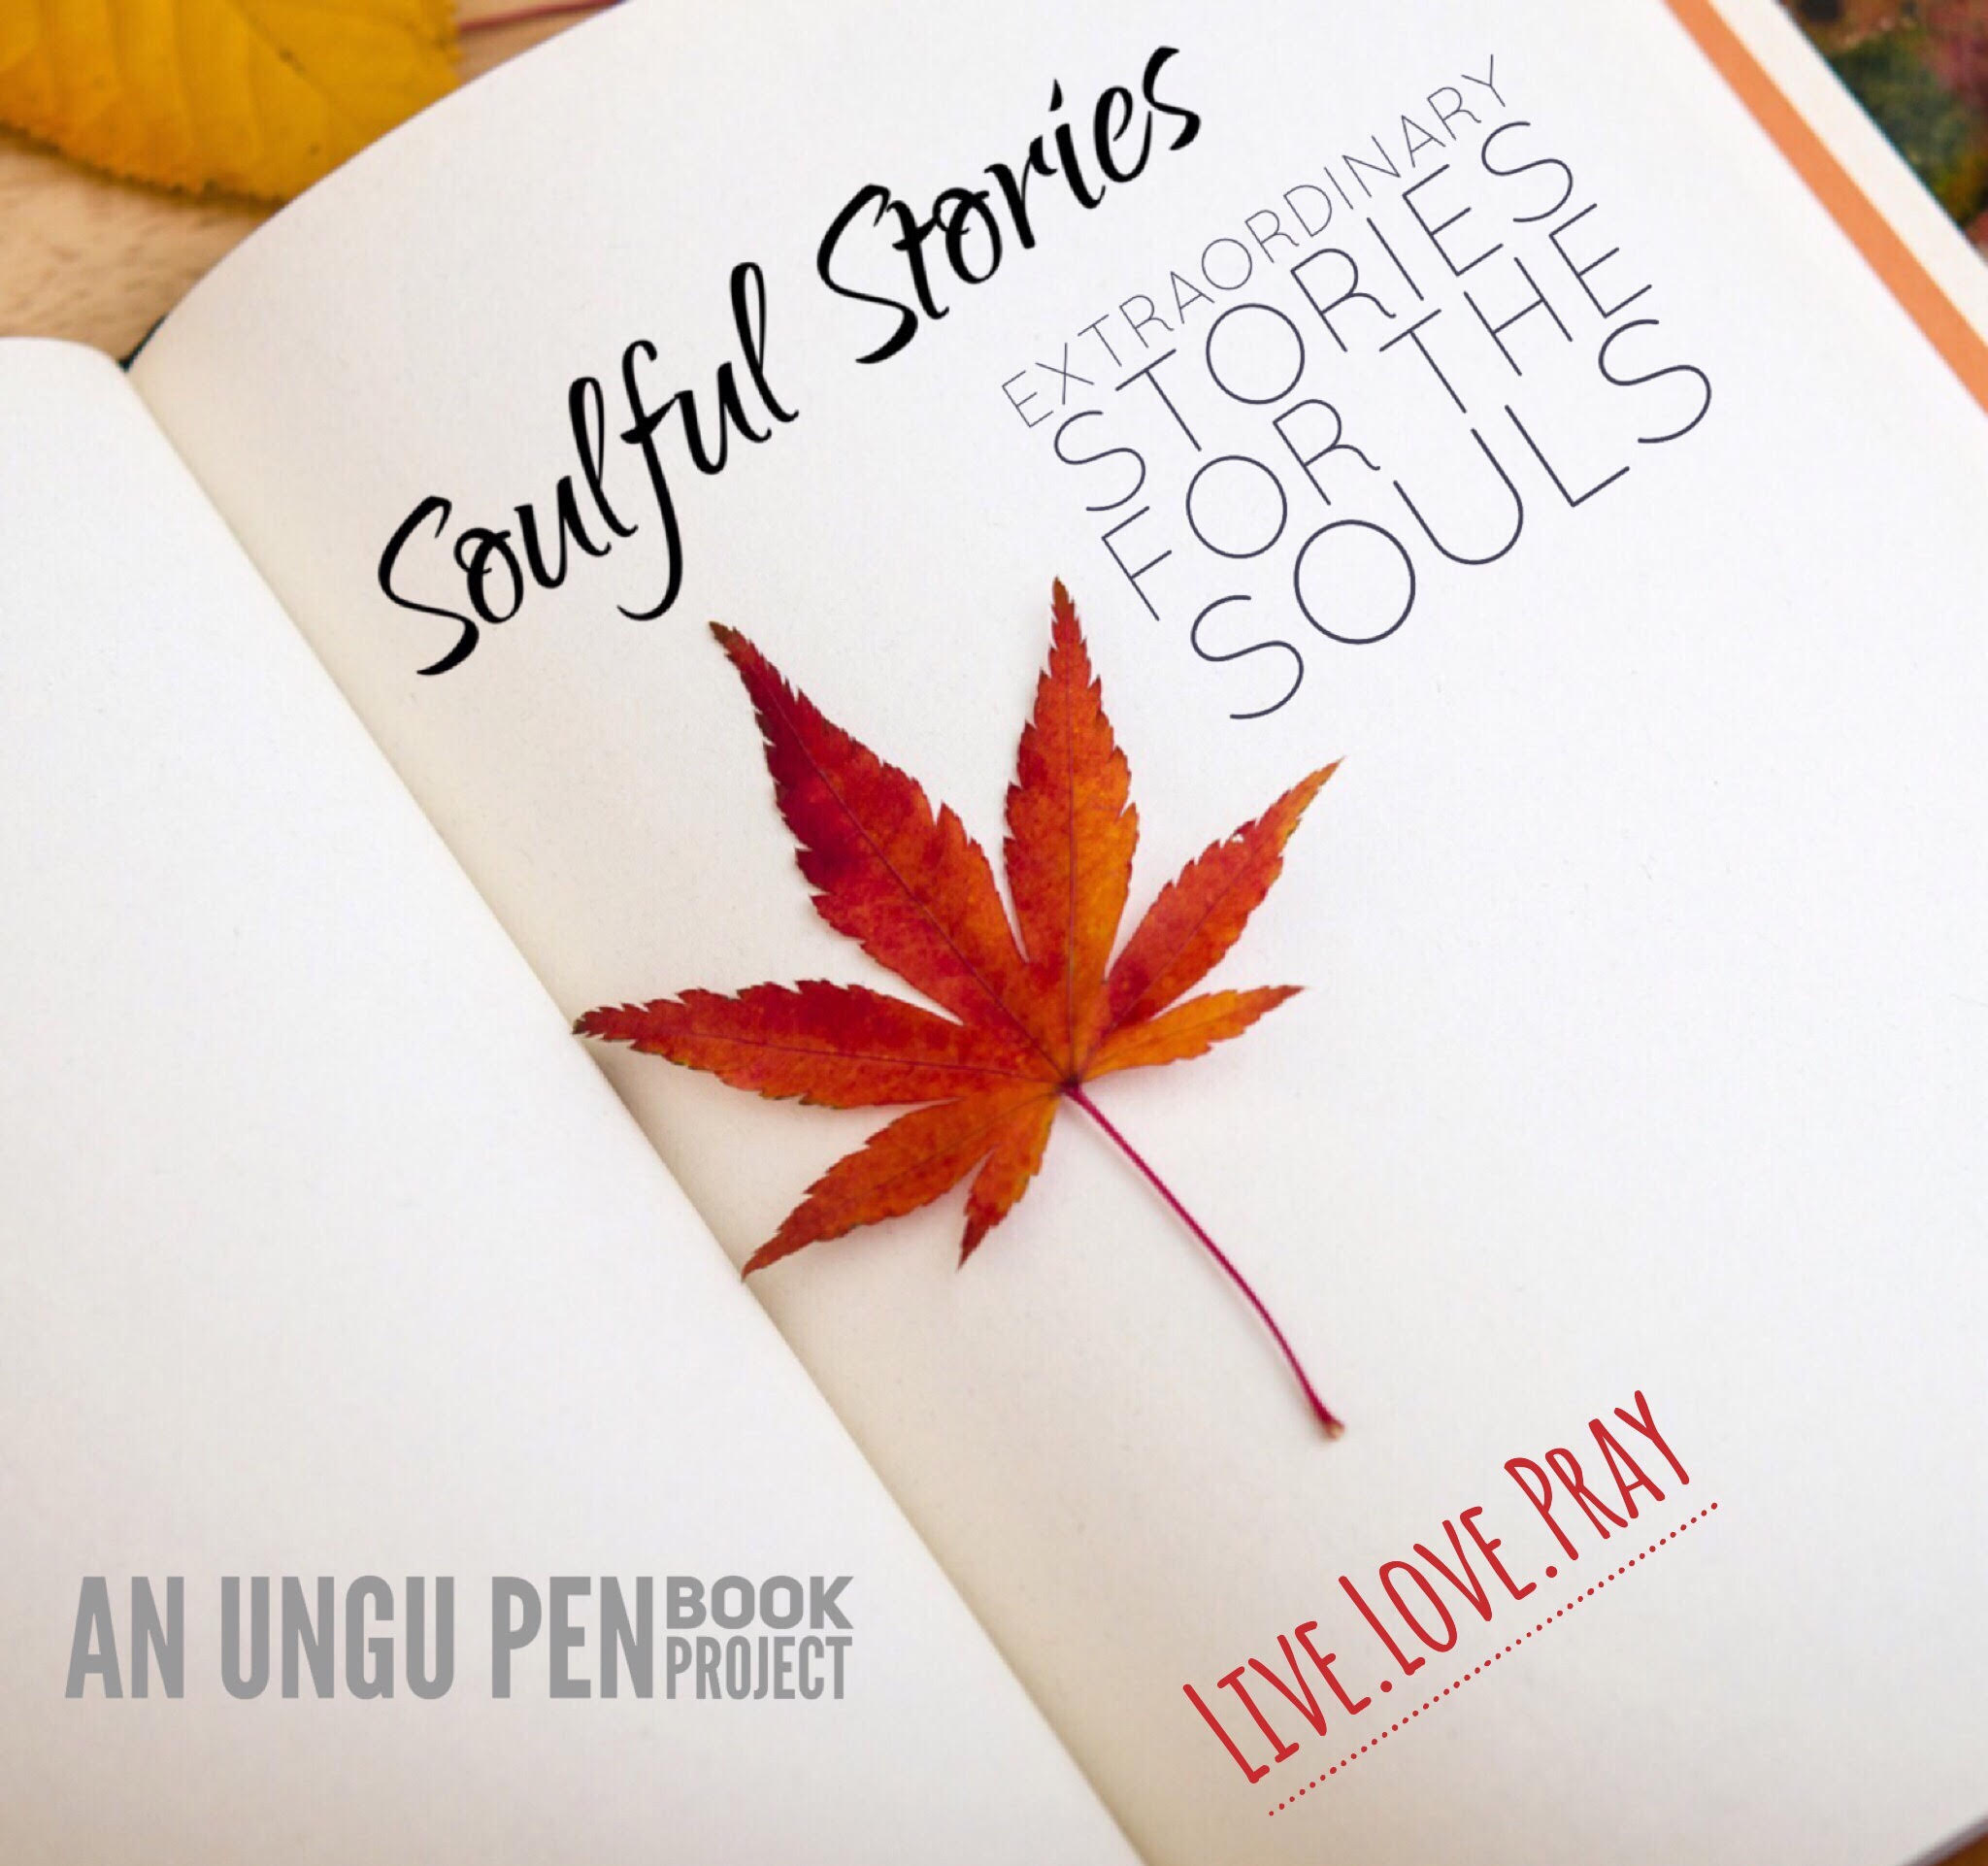 Soulful Stories – A compilation of extraordinary stories for the soul